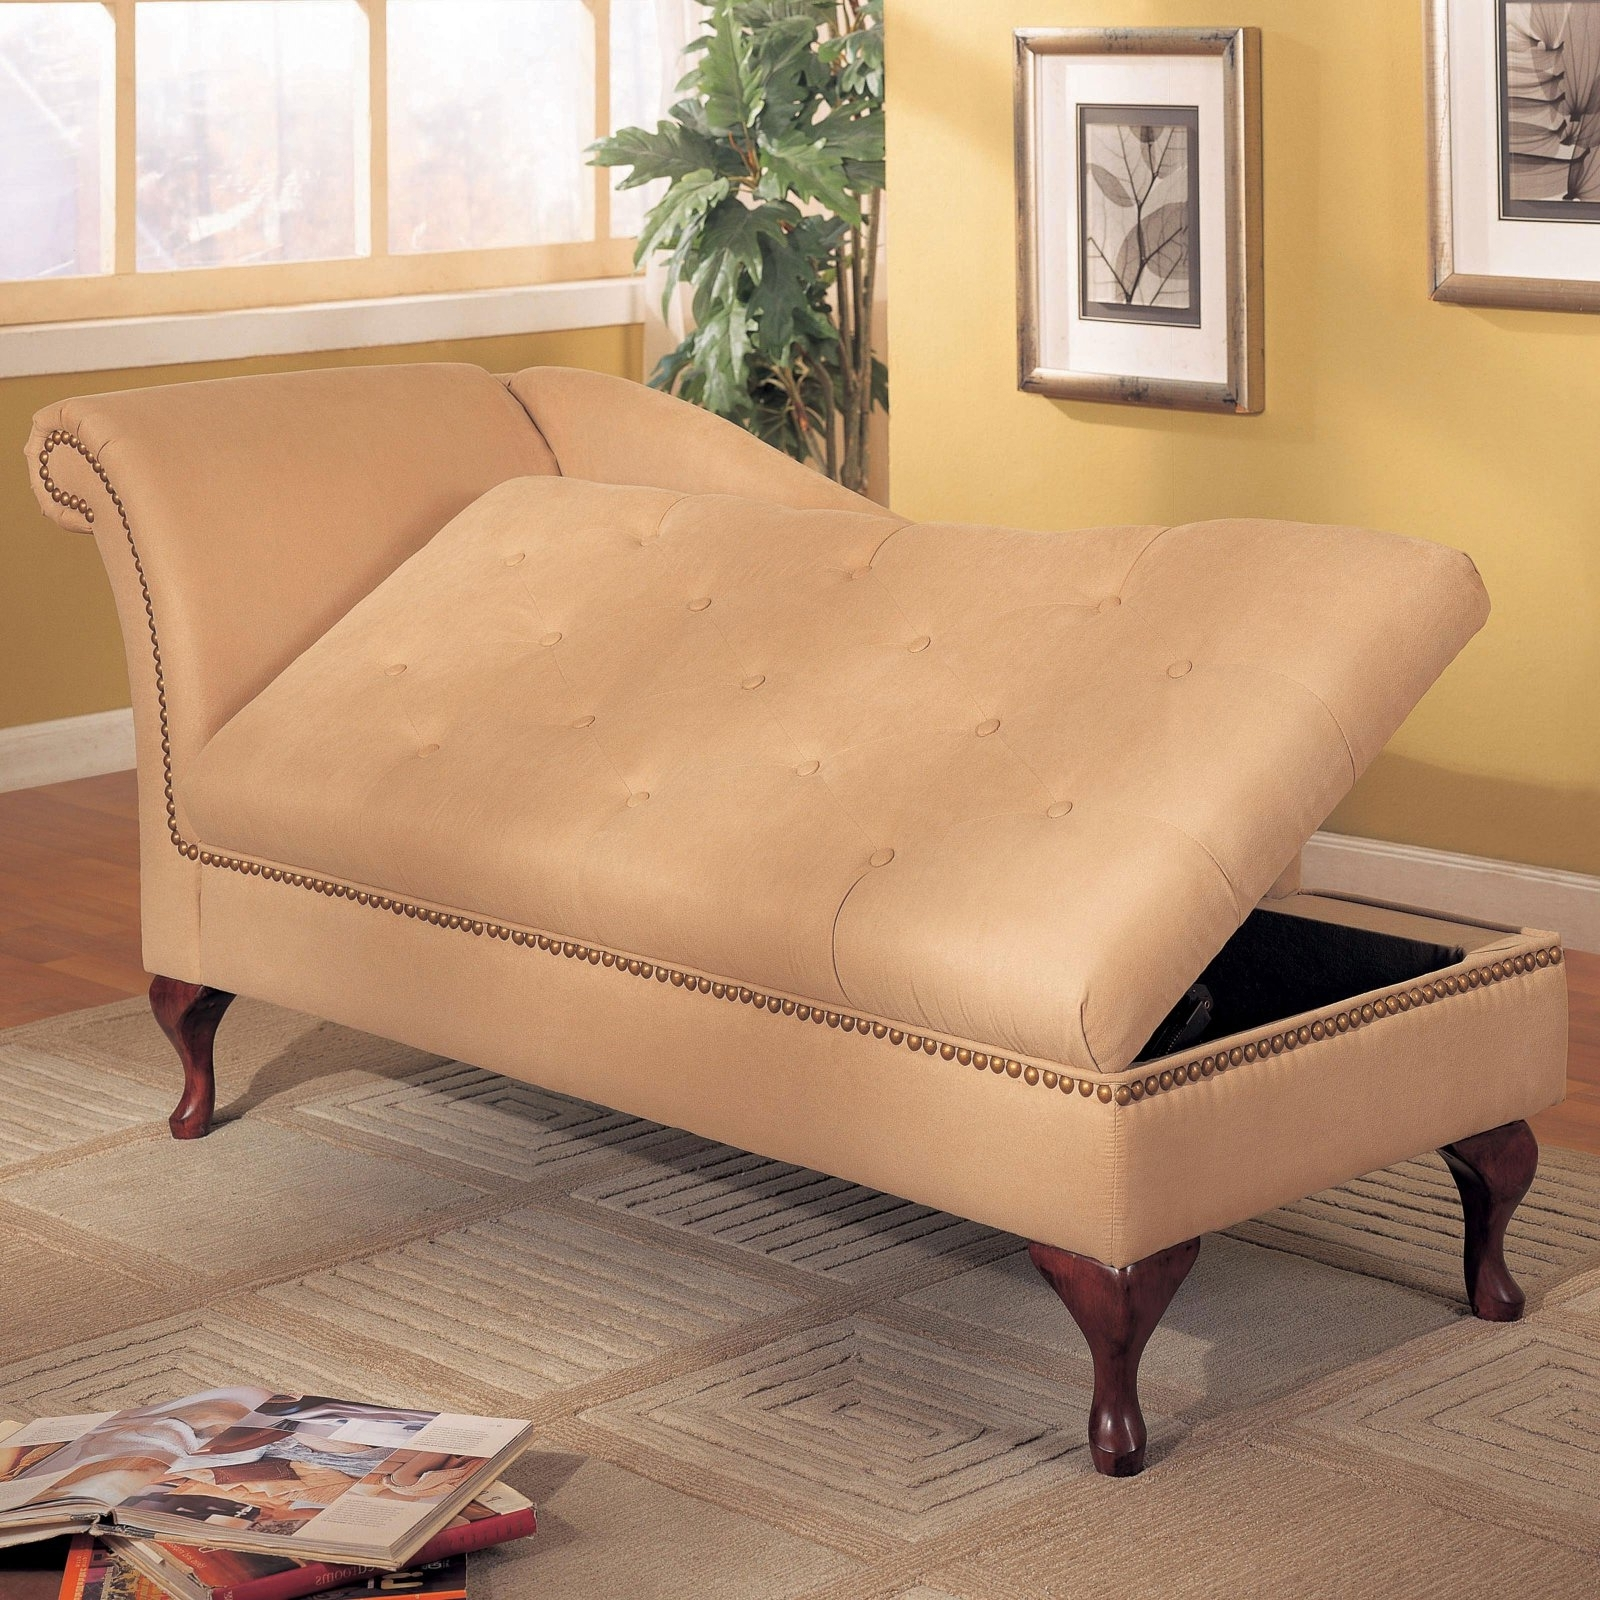 Bedroom Chaise Lounges With Best And Newest Small Bedroom Chaise Lounge Chairs • Lounge Chairs Ideas (View 7 of 15)